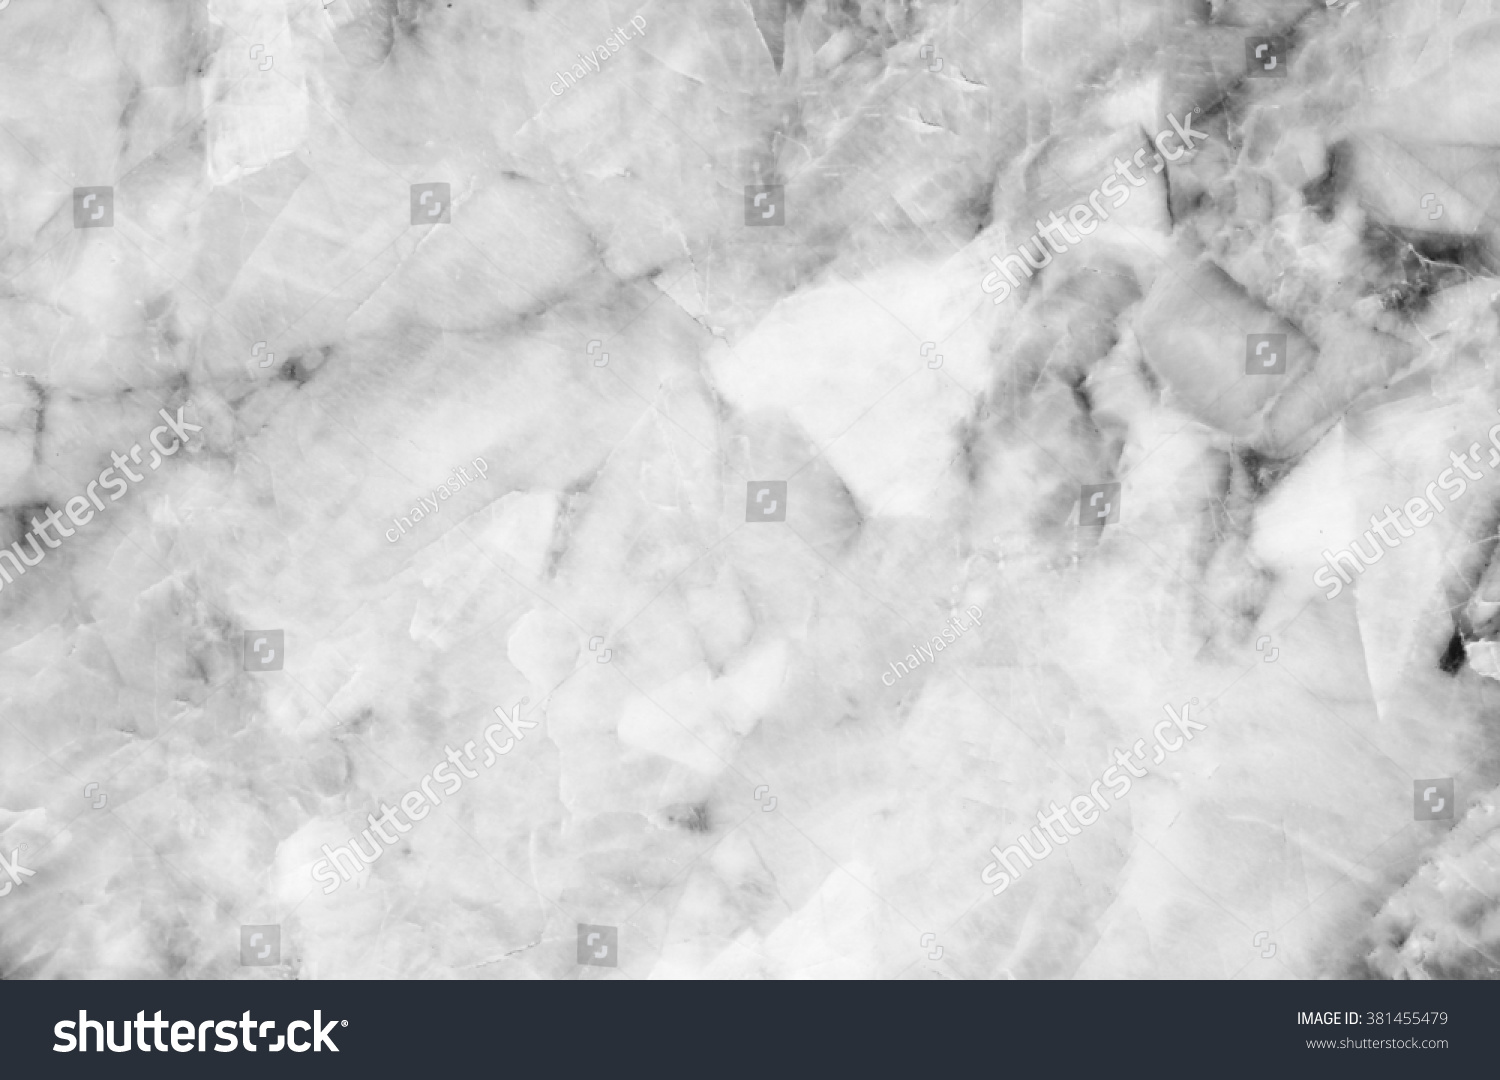 Must see Wallpaper Marble Text - stock-photo-marble-texture-marble-wallpaper-background-texture-381455479  Trends_672665.jpg